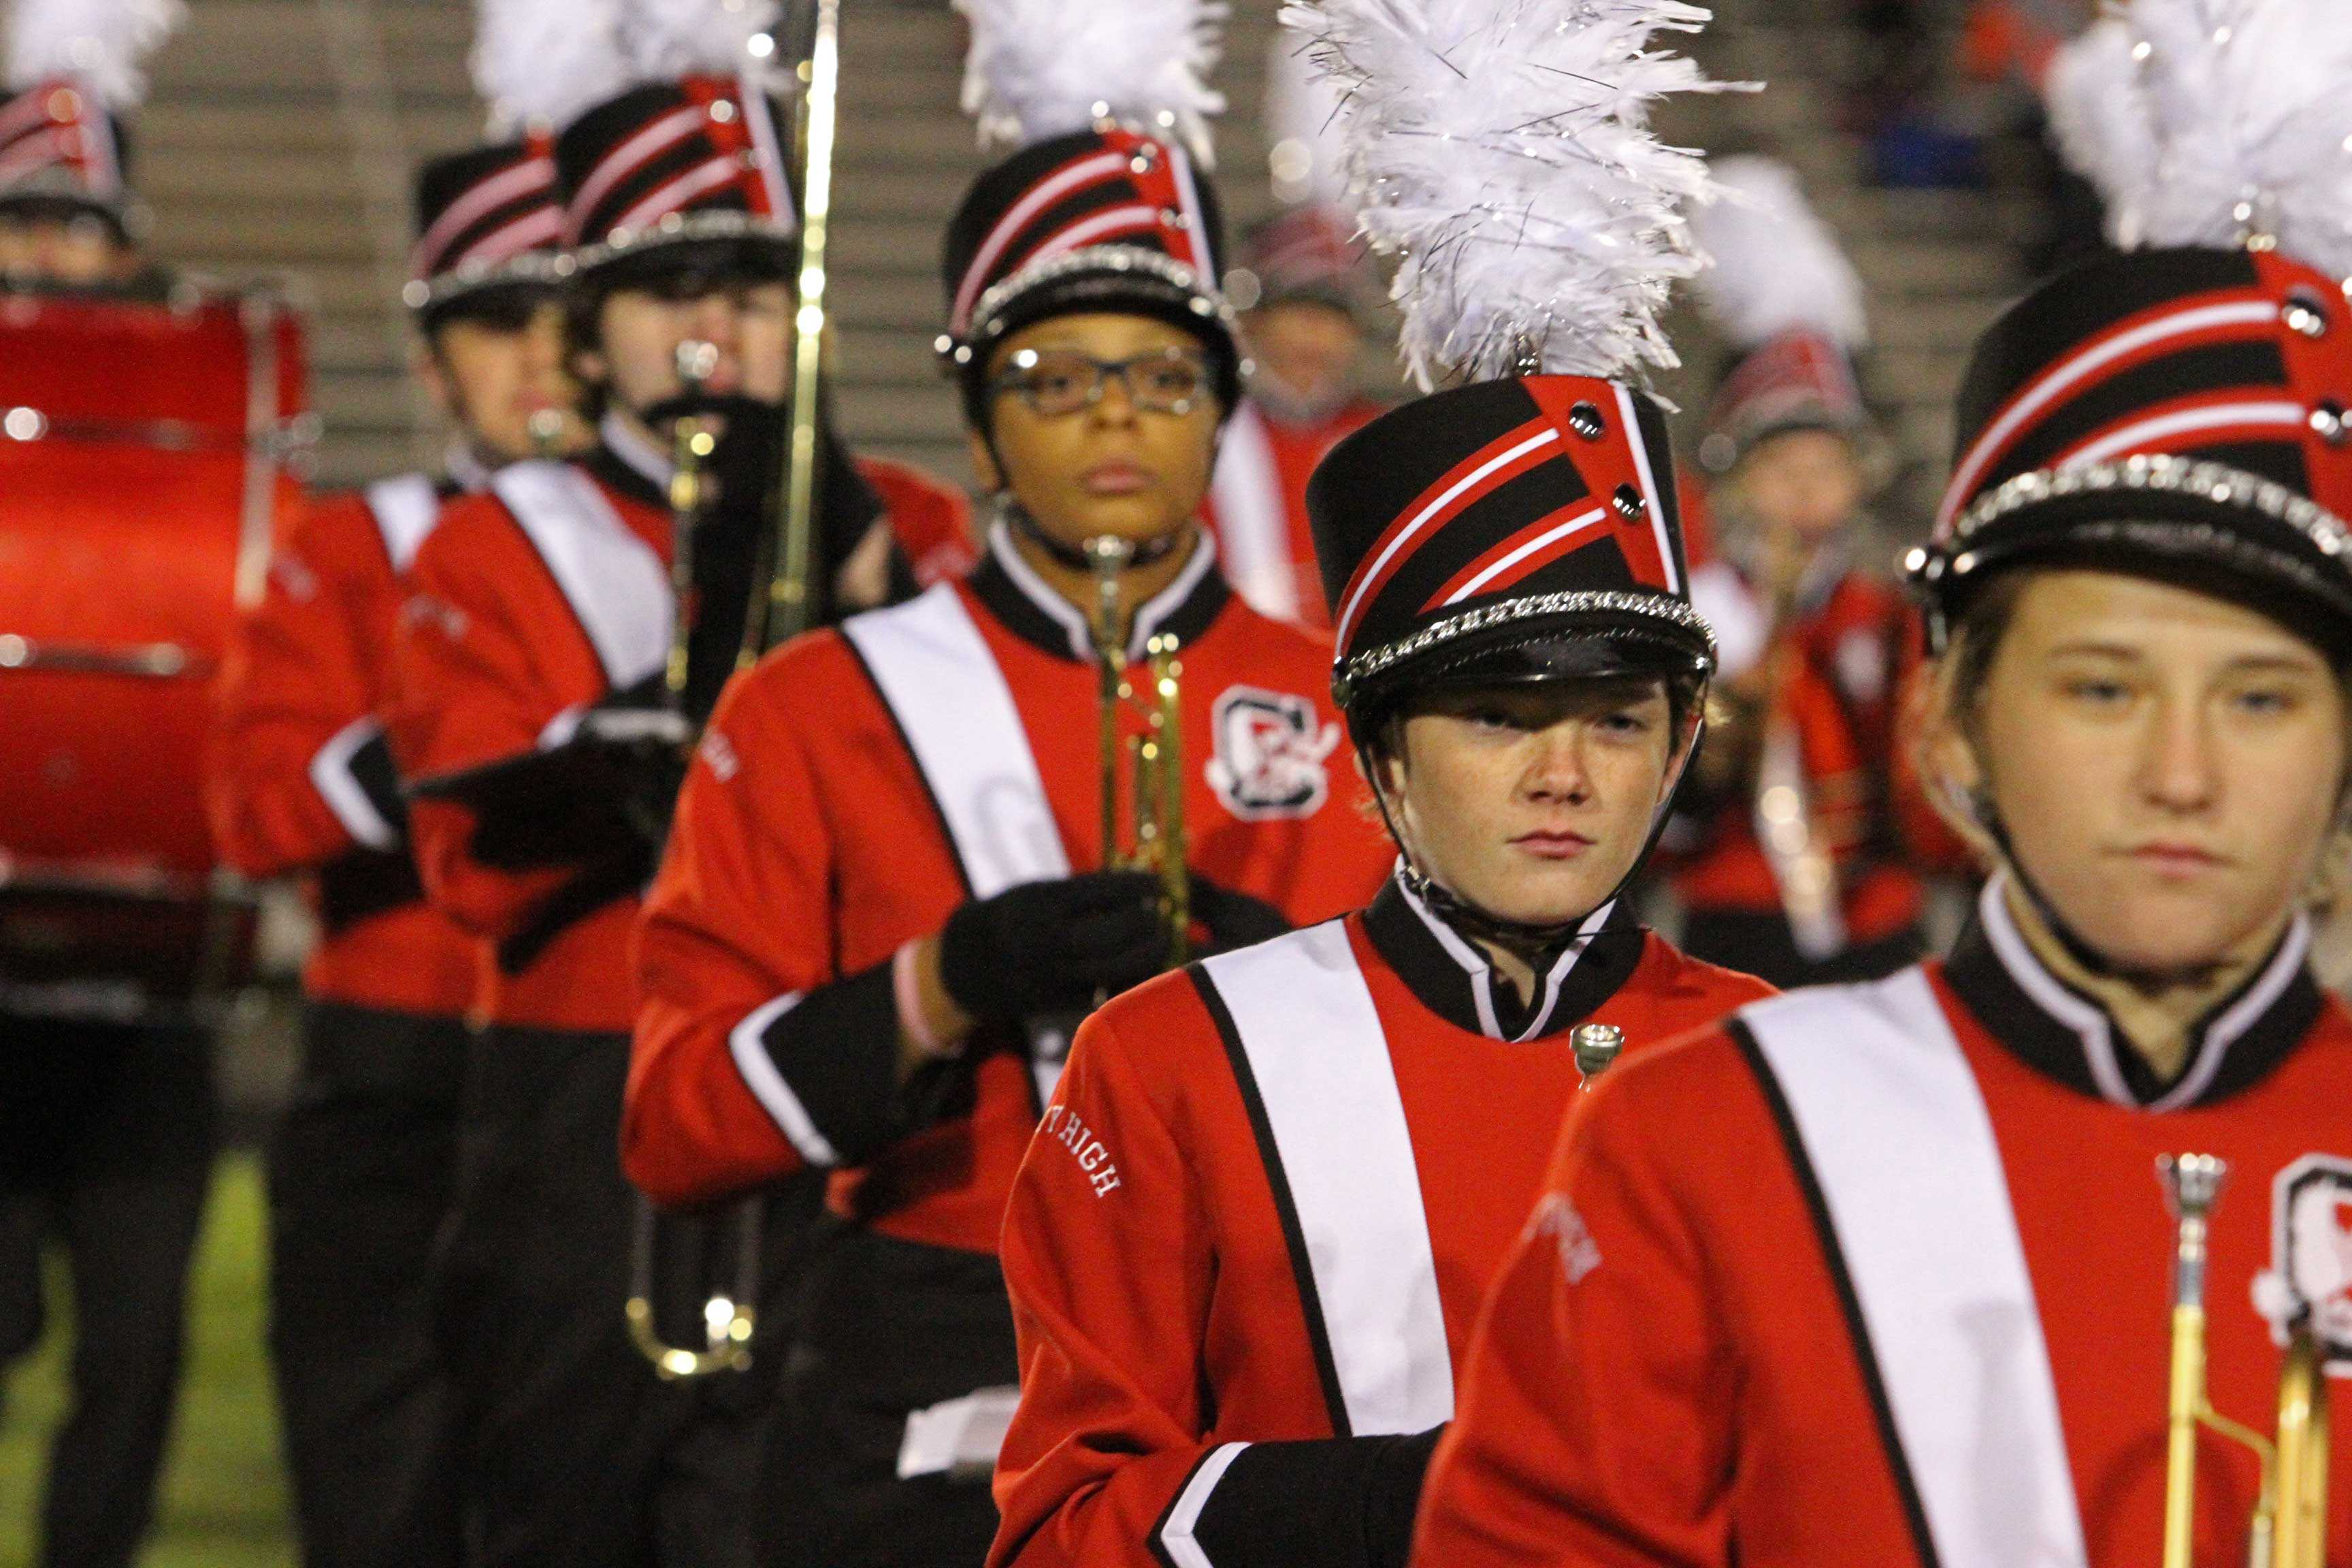 The+Little+Hawk+Marching+Band+march+off+the+field+following+their+last+pregame+performance+of+the+season+on+the+chilly+October+night.